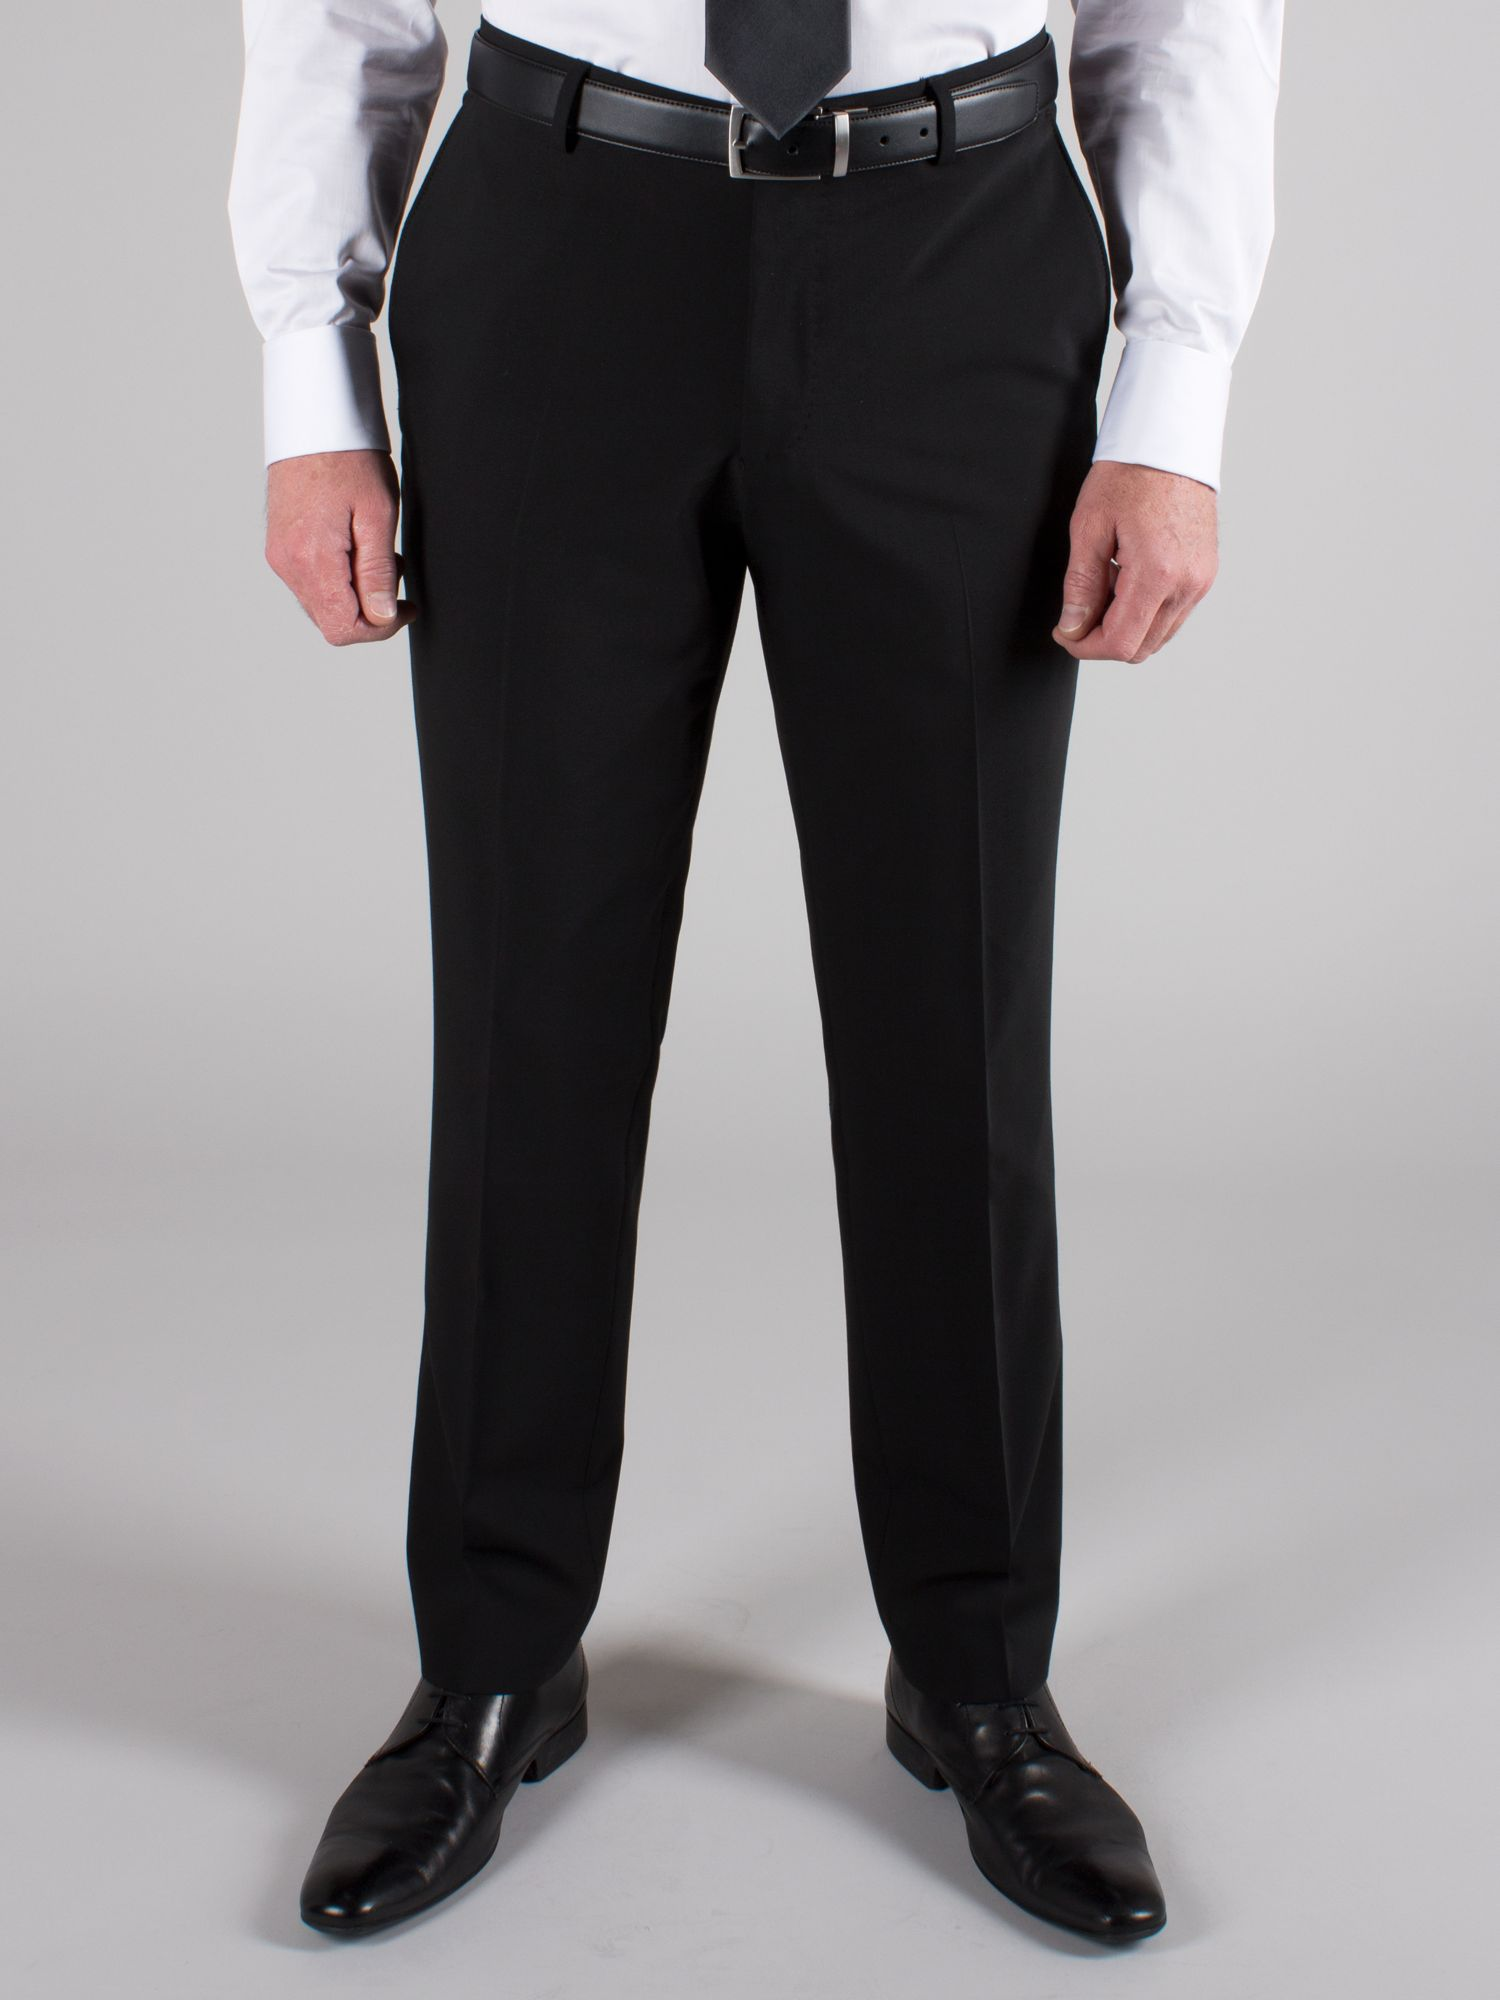 Plain Black Trouser